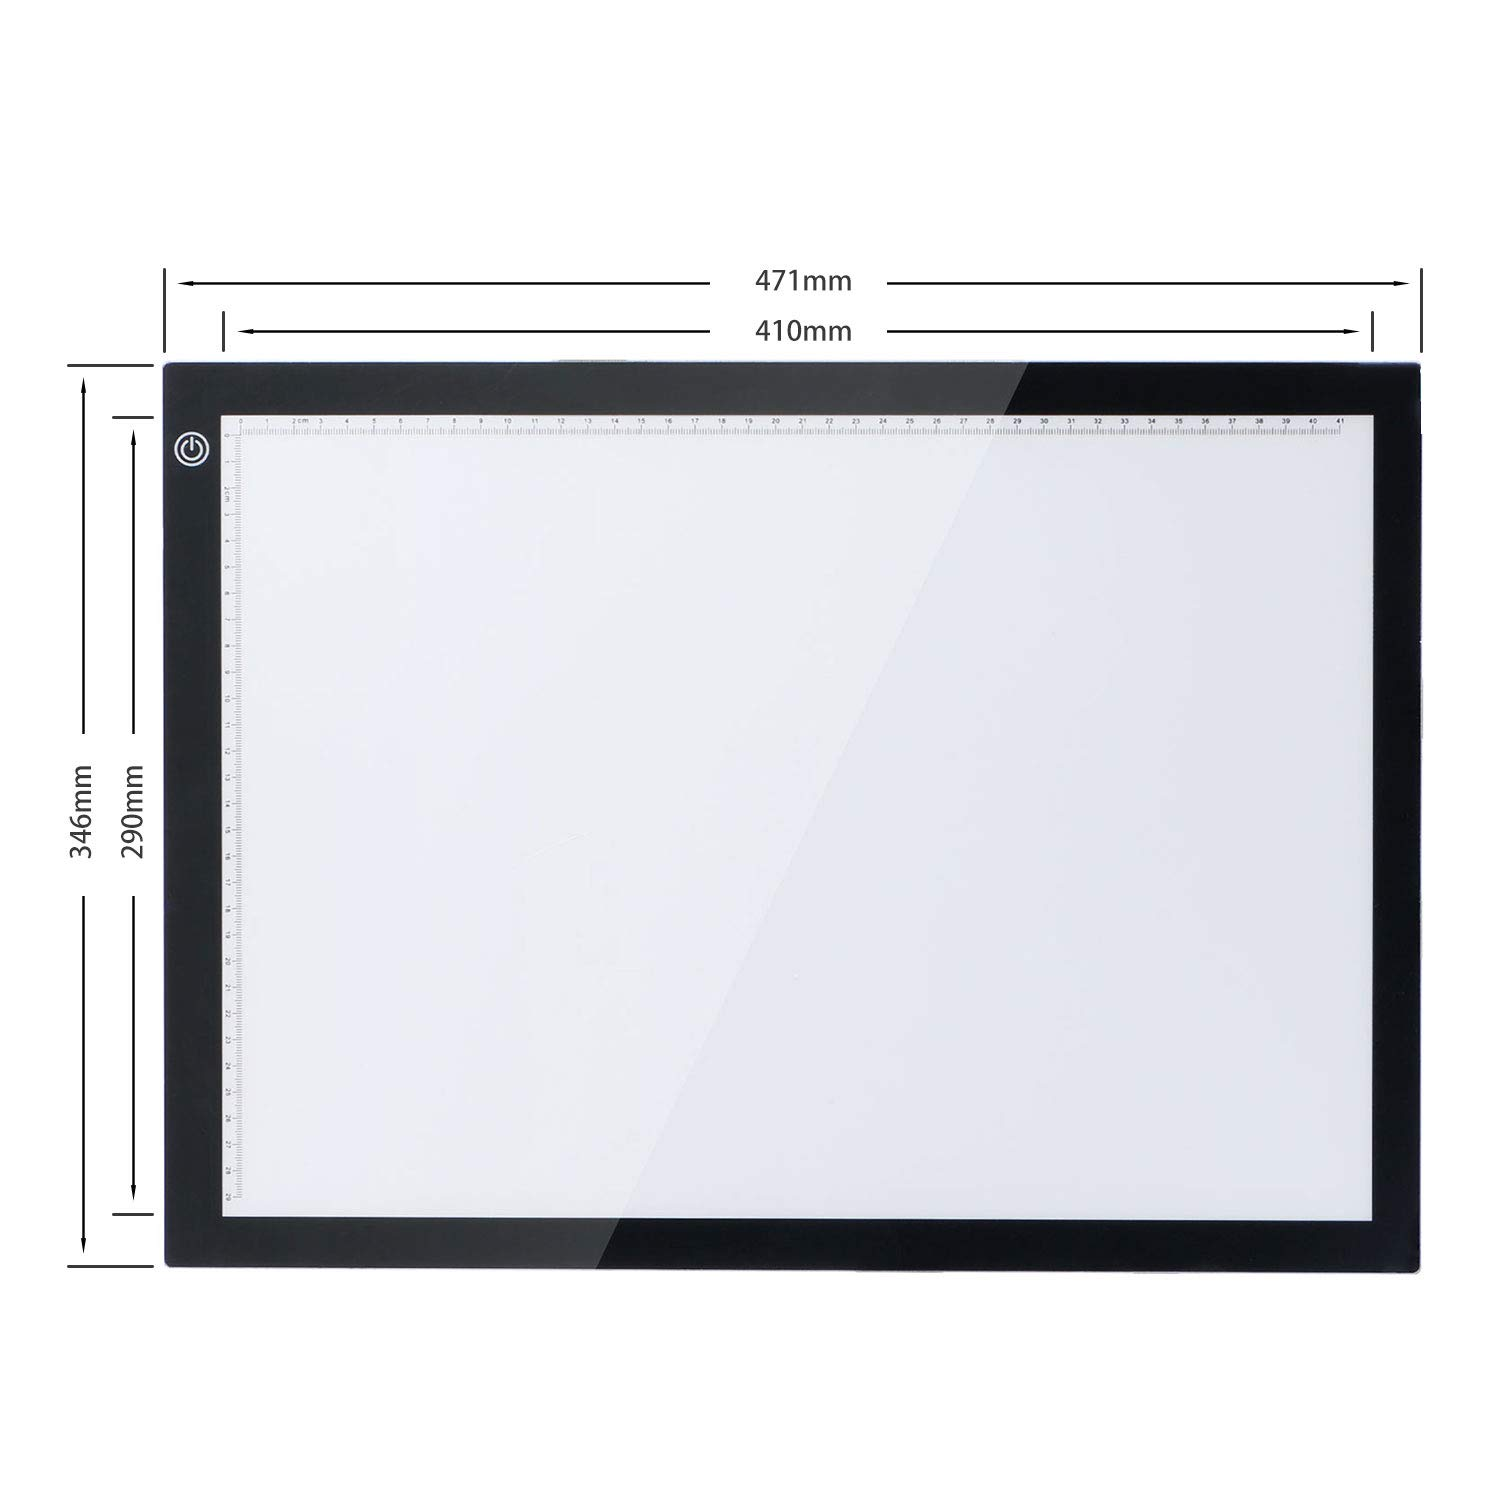 Joyfay A3 Tracing Light Pad Box Ultra-Thin Portable LED Light Box Tracer Tracing Copy Board w//Pad Stand USB Power Cable w//Adapter Dimmable Brightness LED Artcraft for Drawing Sketching X-ray Viewing